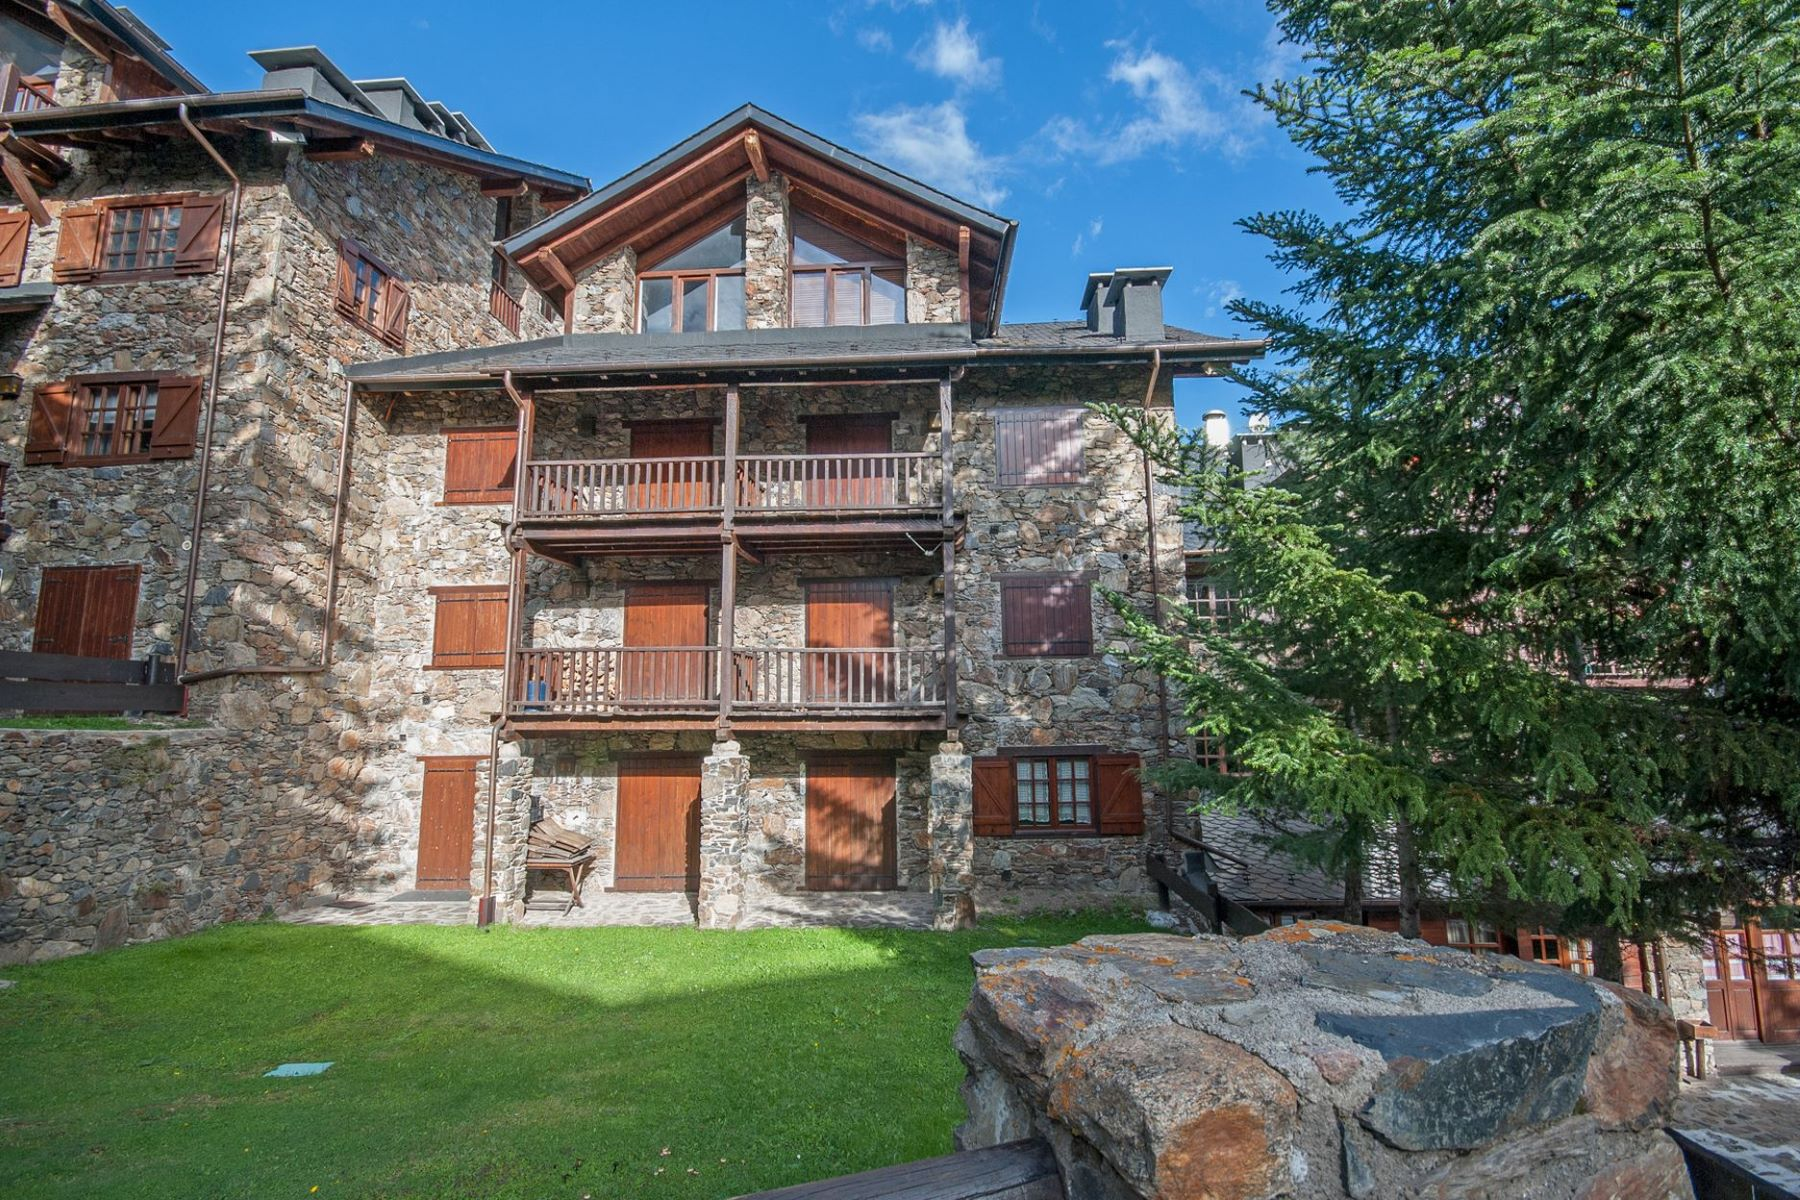 дуплекс для того Продажа на Duplex for sale in Tarter (El) Other Canillo, Canillo, AD100 Andorra